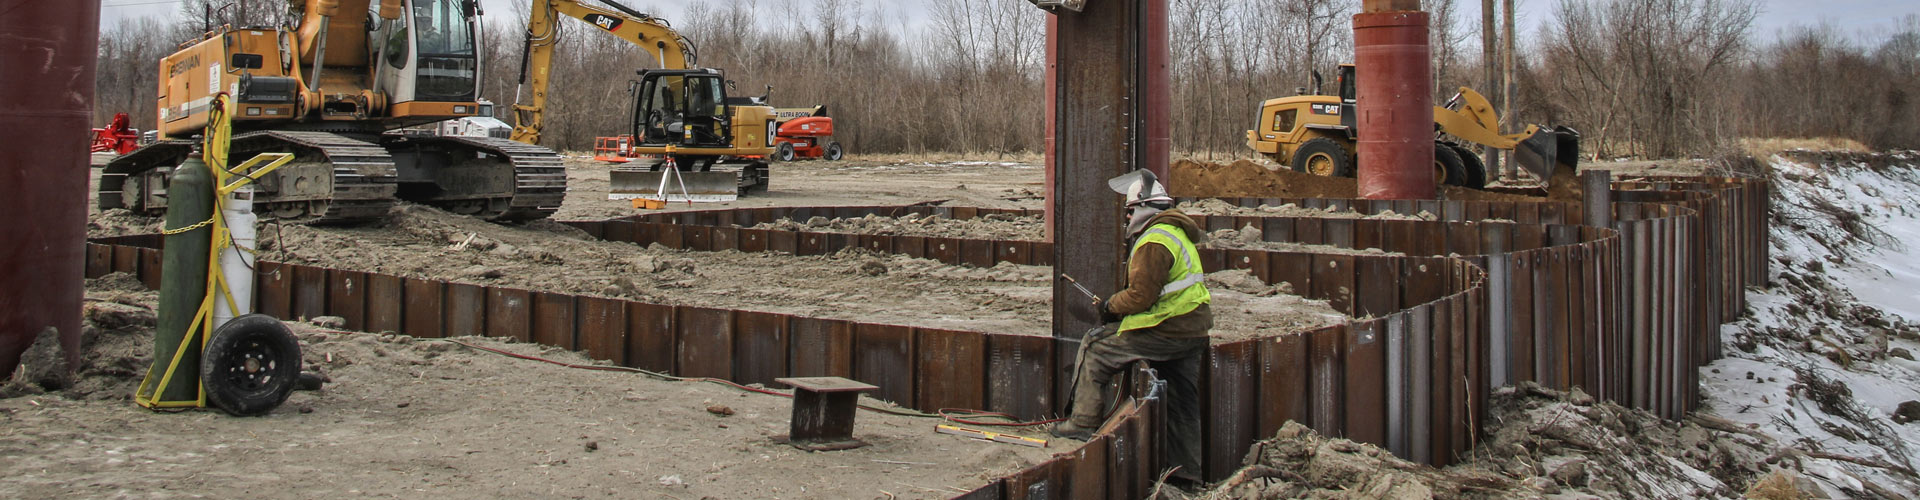 marine construction, dock construction, sheet pile walls, industrial docks, pile driving, deep foundations